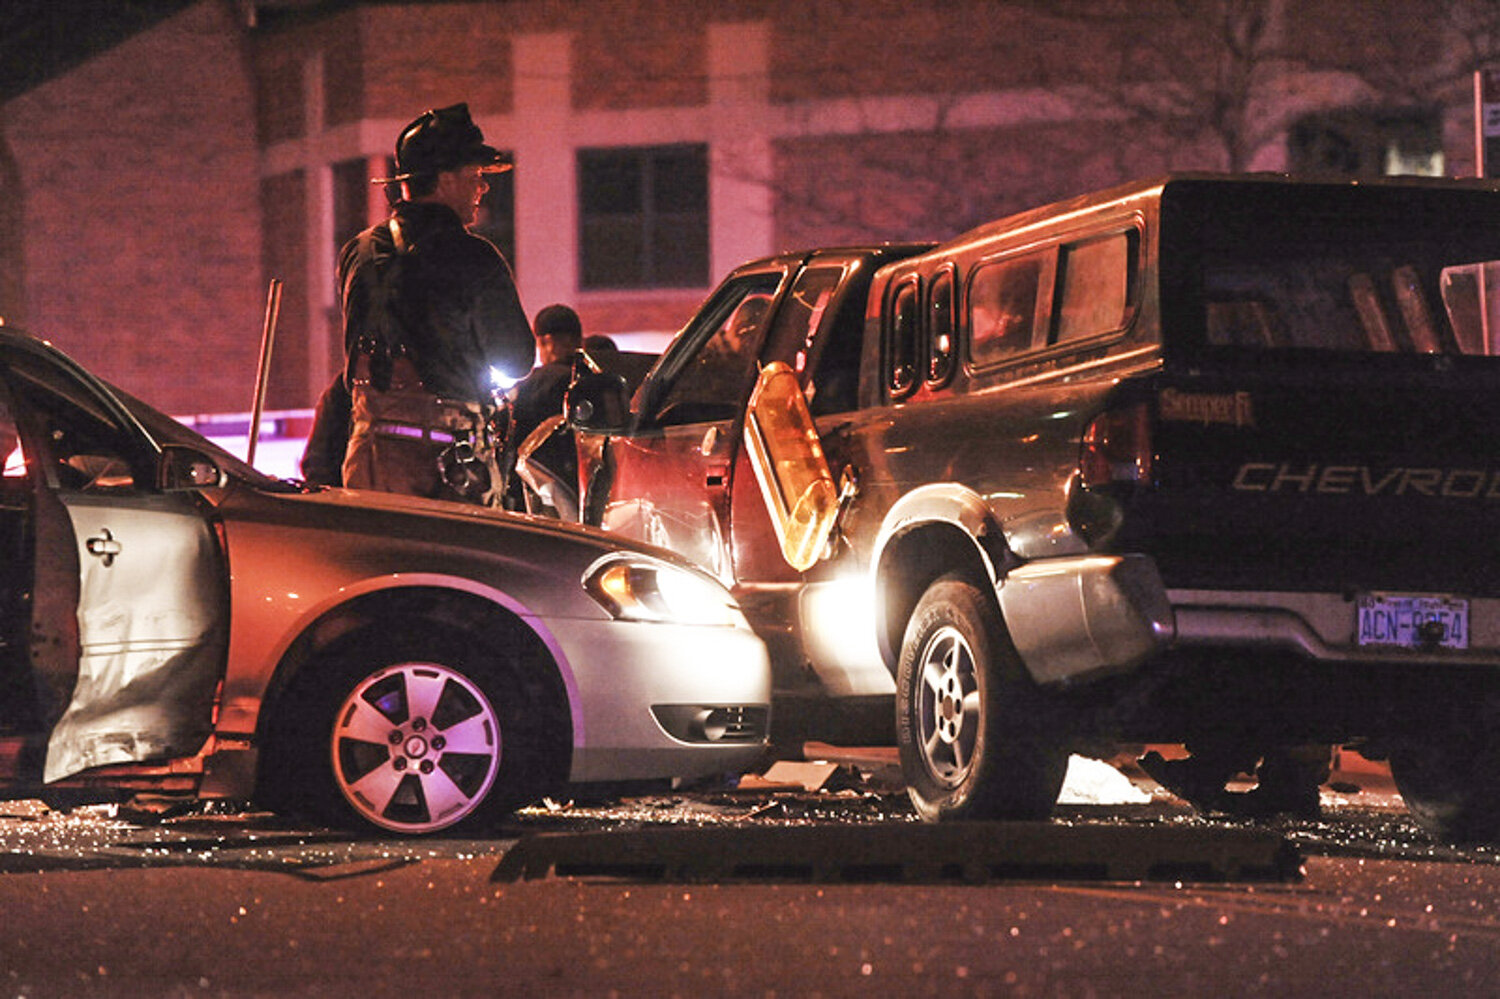 A robbery suspect led Town of Amherst Police on a high speed chase into the City of Buffalo before crashing his car into two other vehicles at the corner of Best and Jefferson Streets in Buffalo.